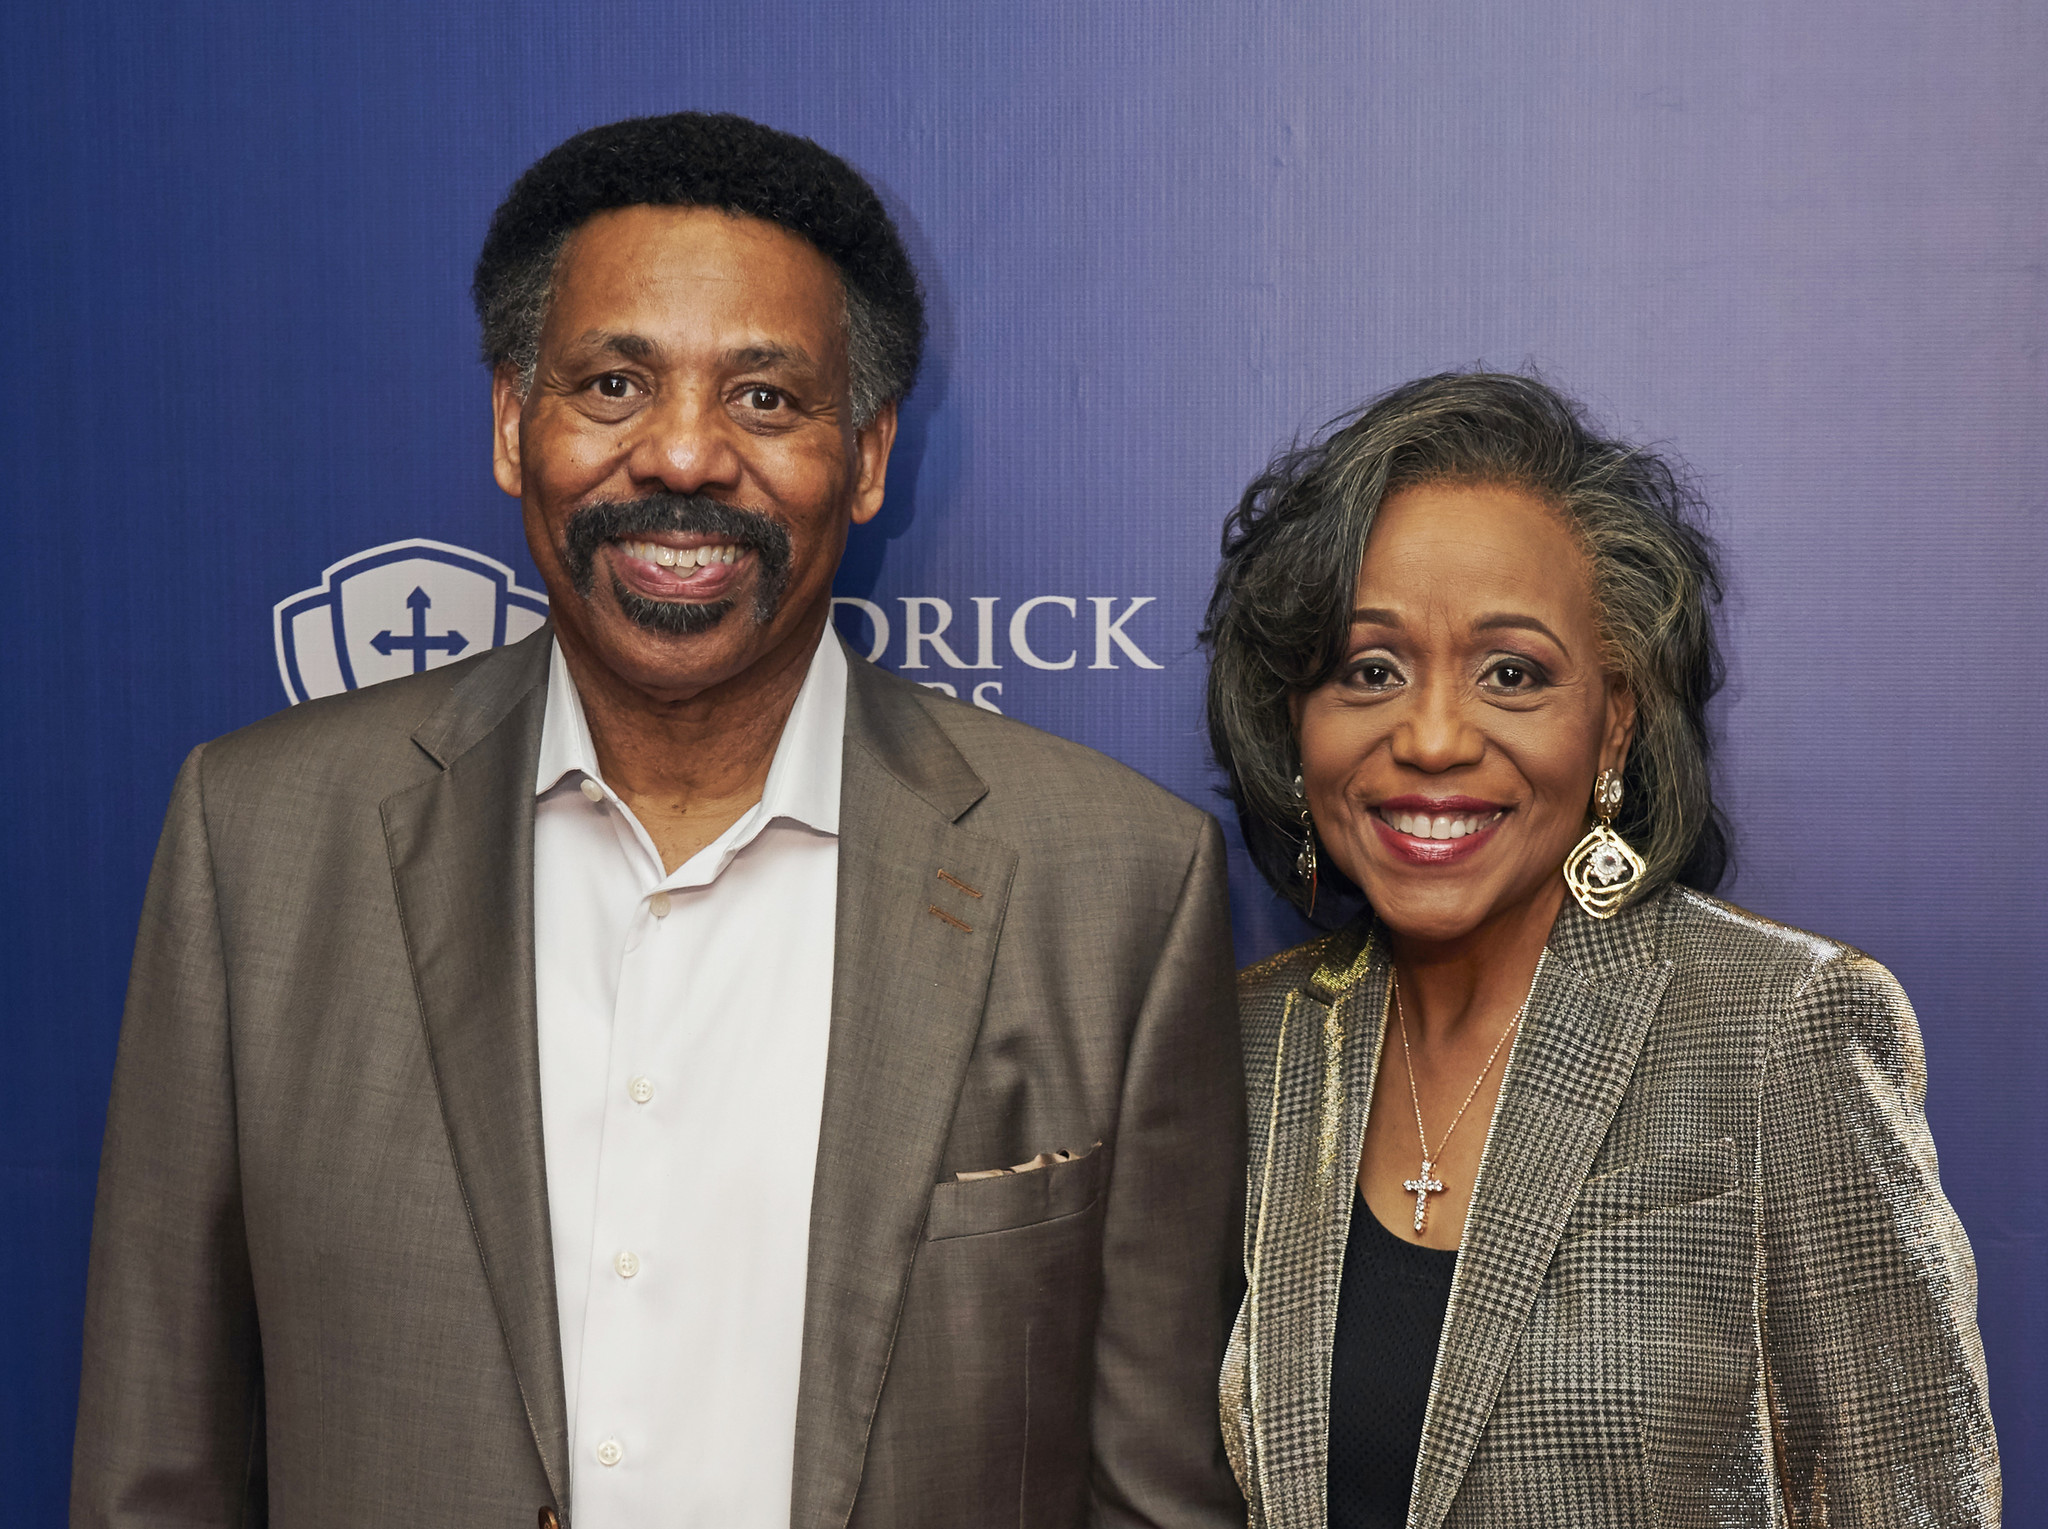 Lois Evans, wife of prominent pastor Tony Evans, dies after cancer battle